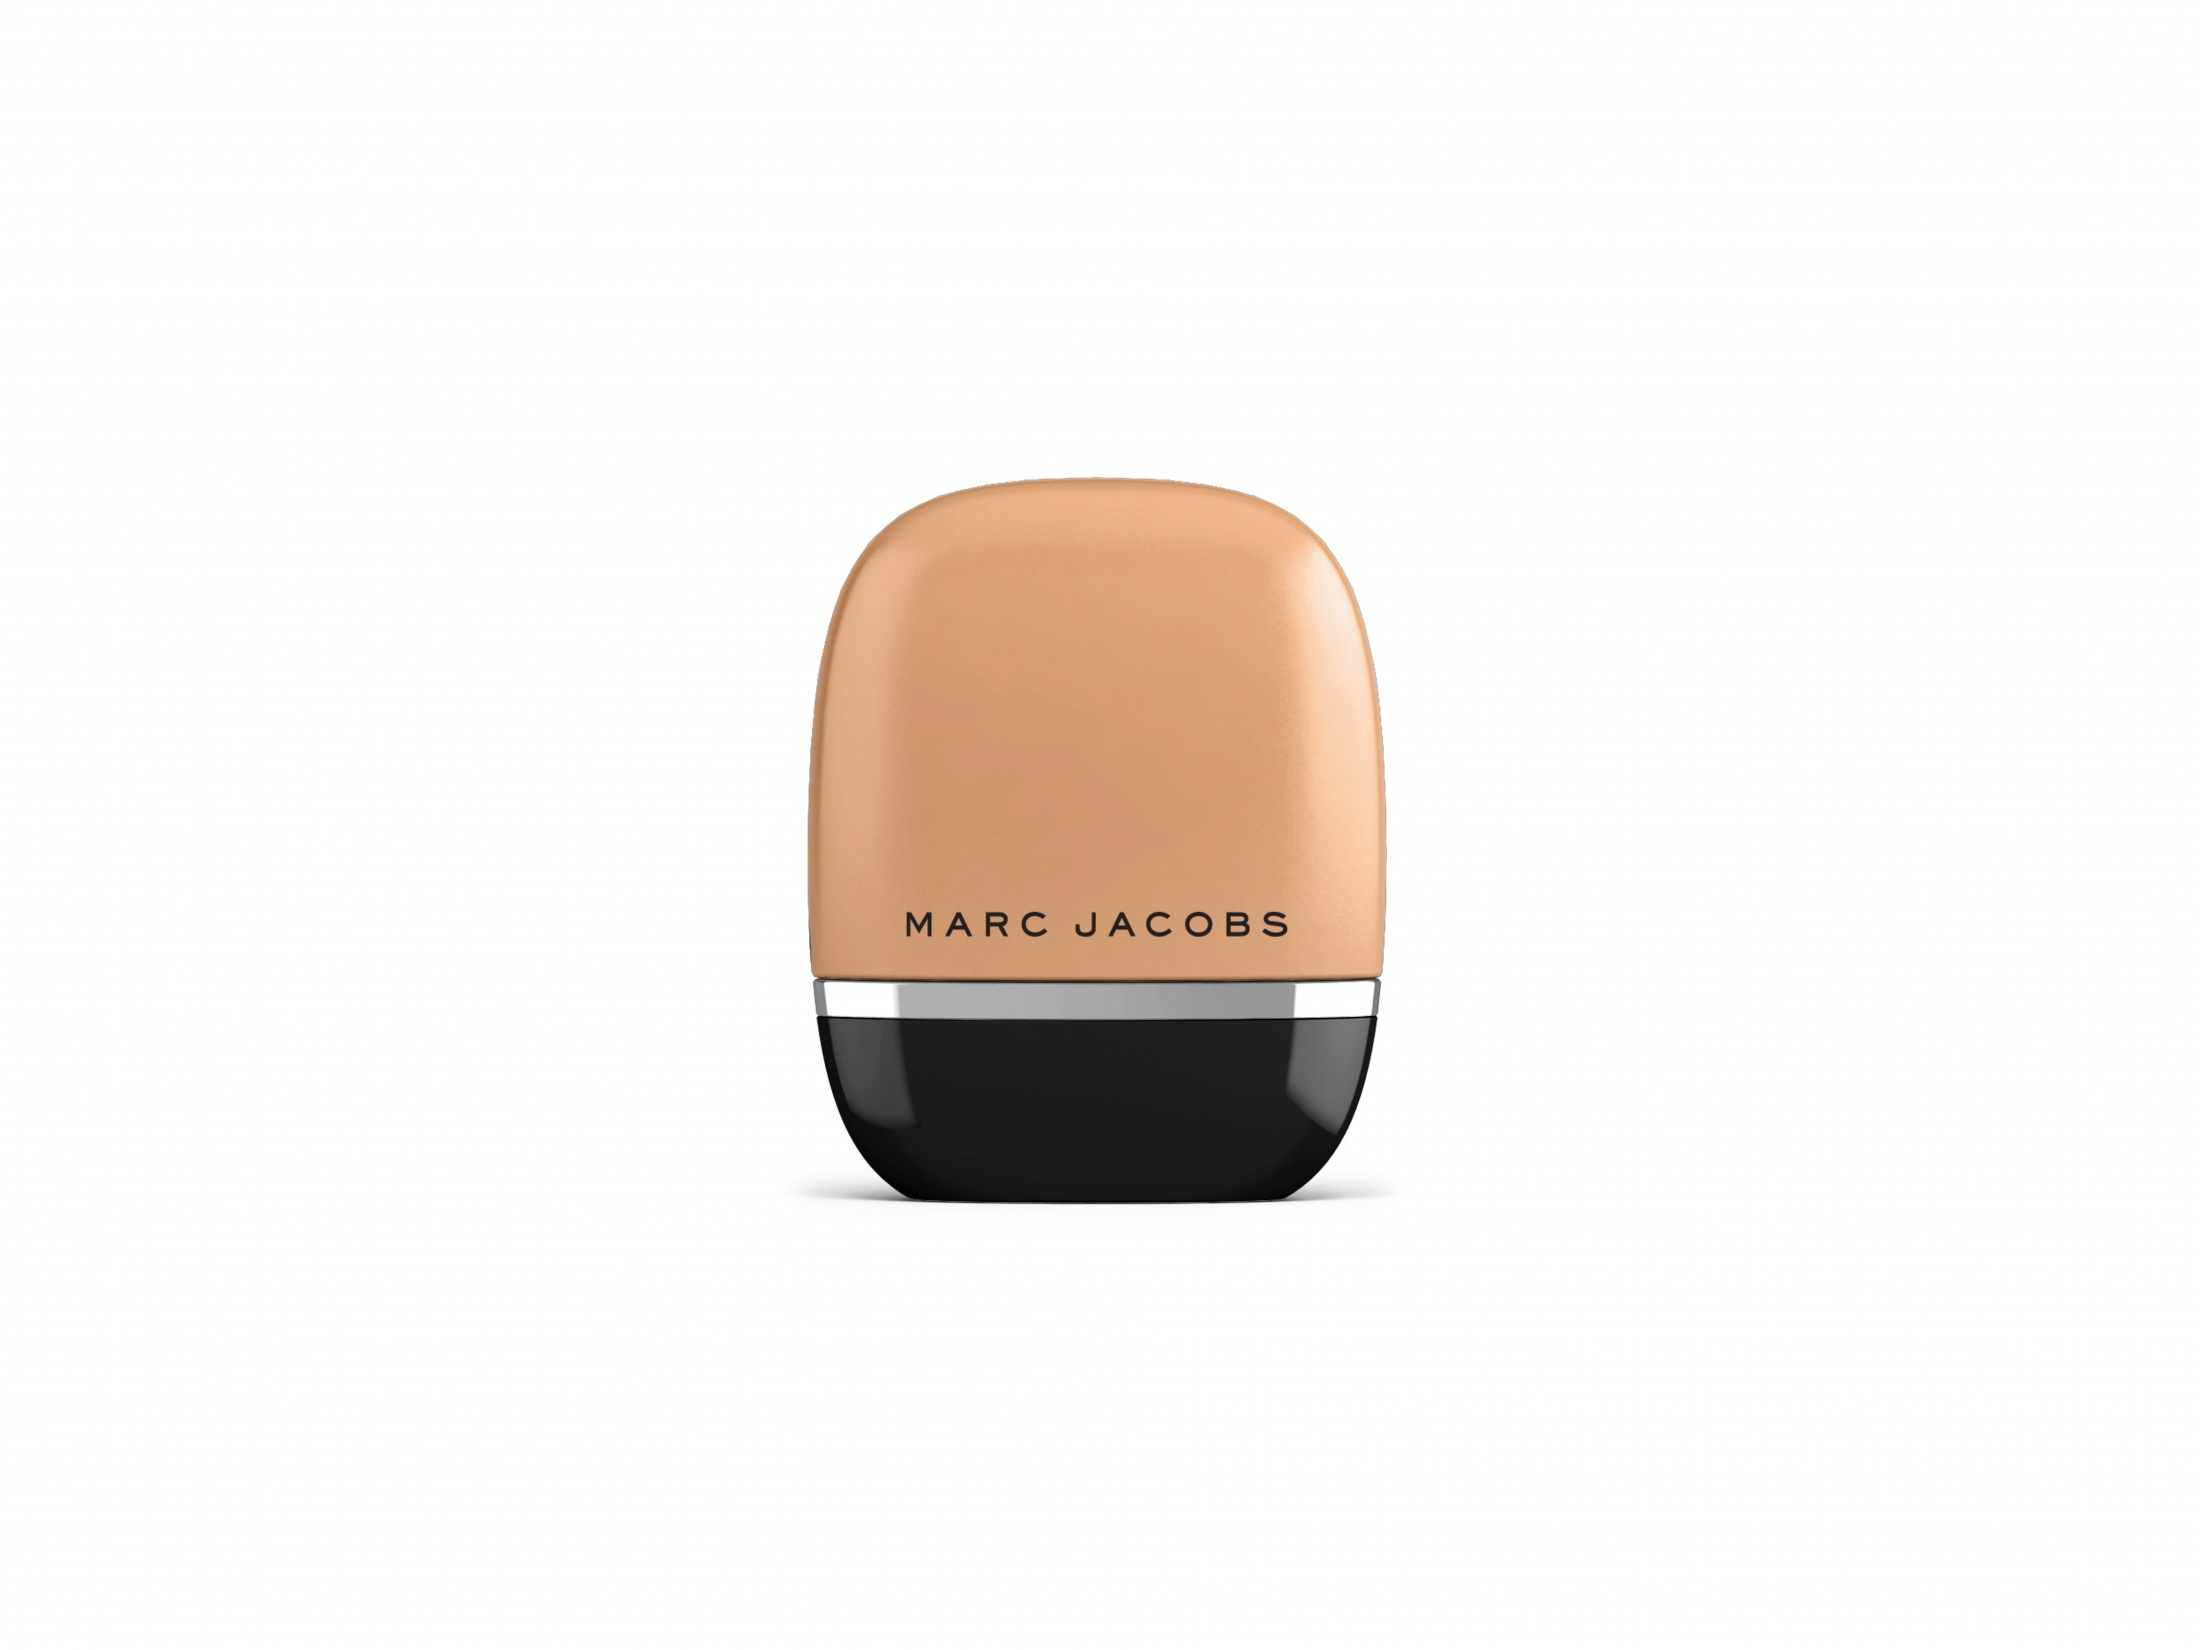 Thumbnail for Marc Jacobs Shameless Youthful Look Foundation